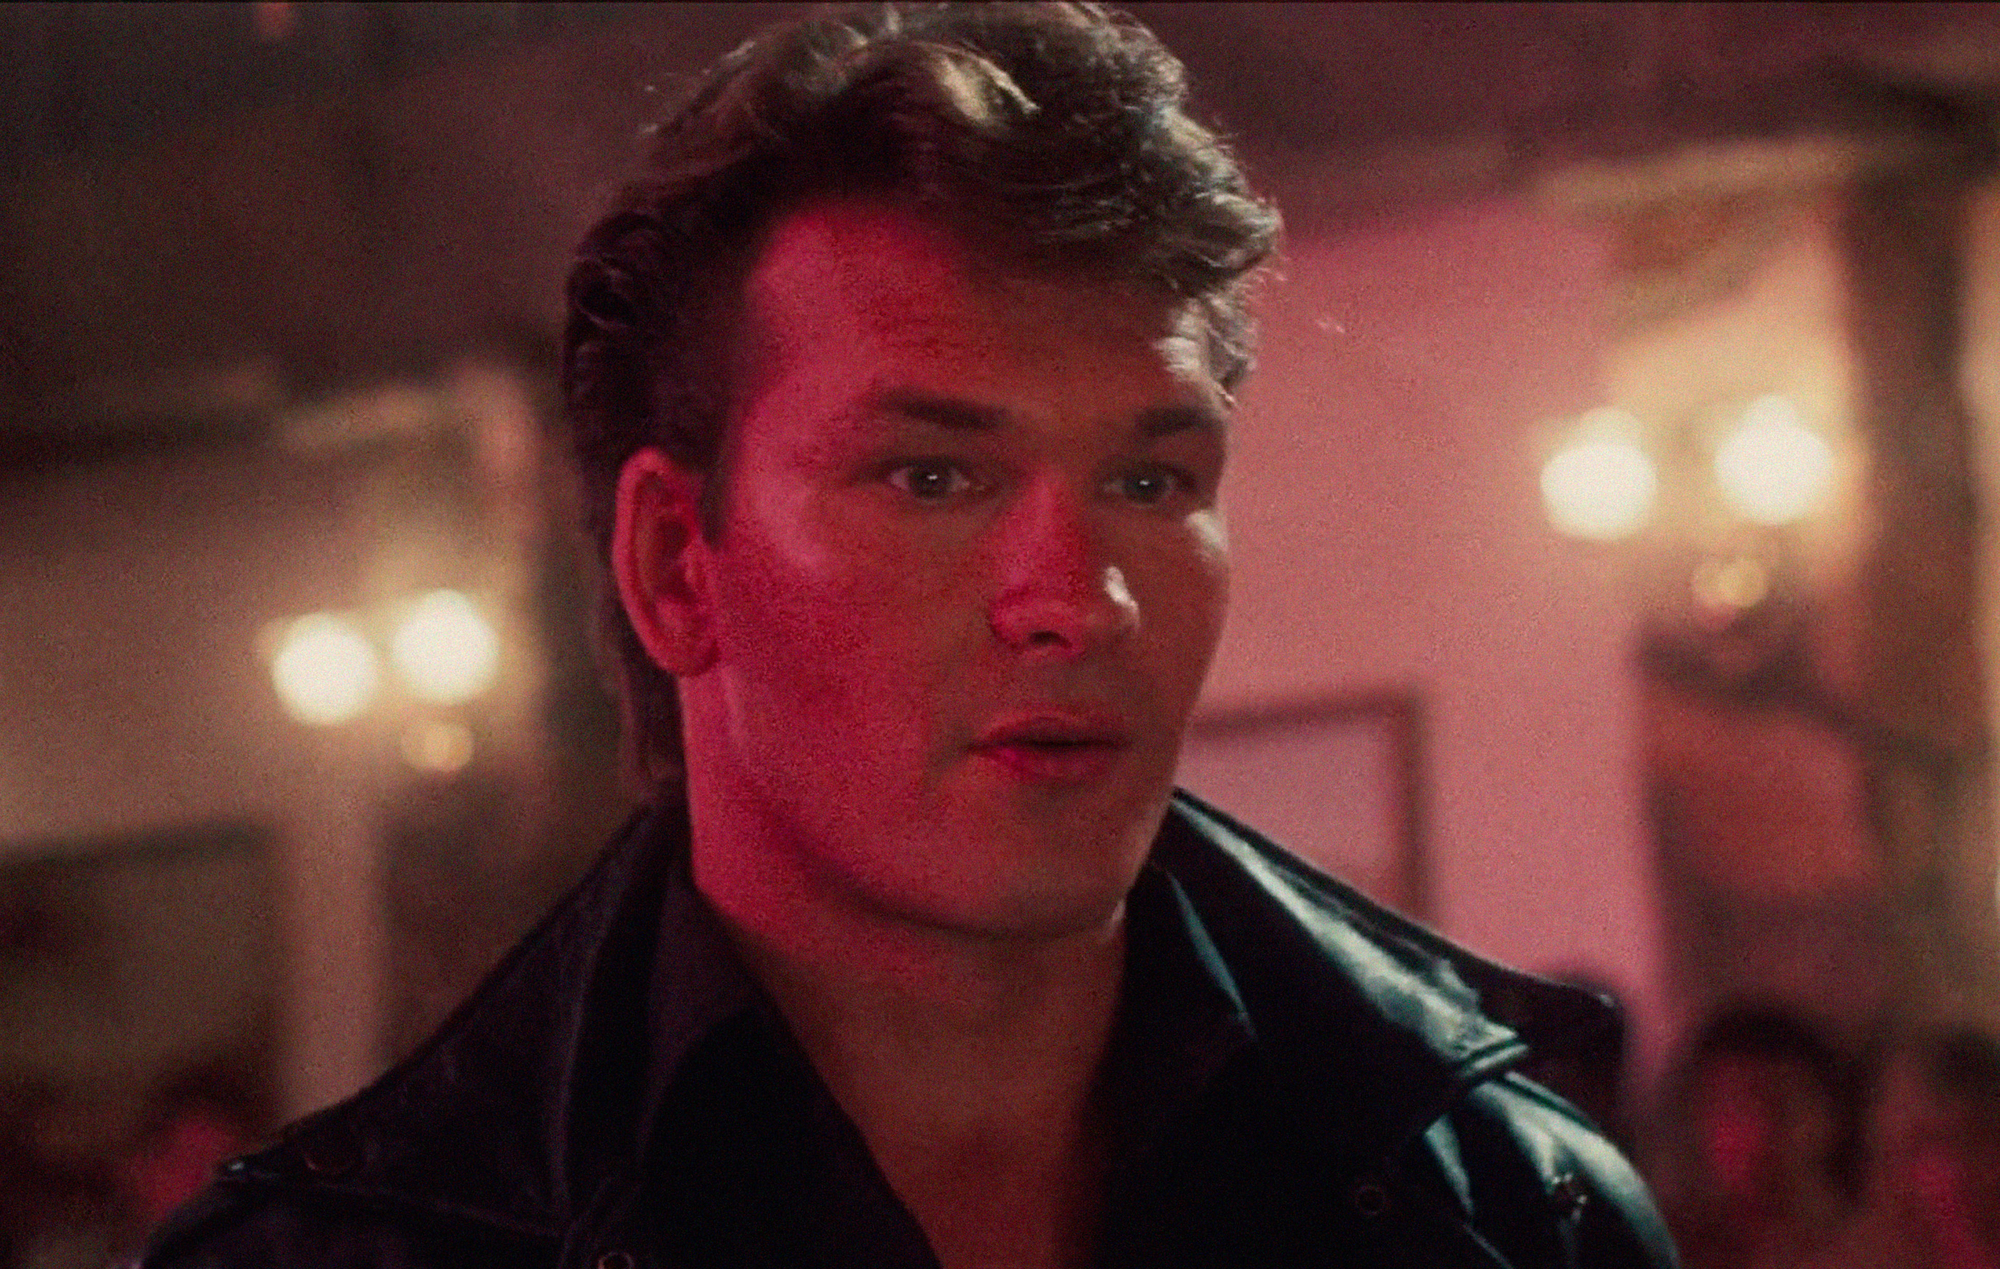 'Dirty Dancing' sequel won't be recasting Patrick Swayze's character